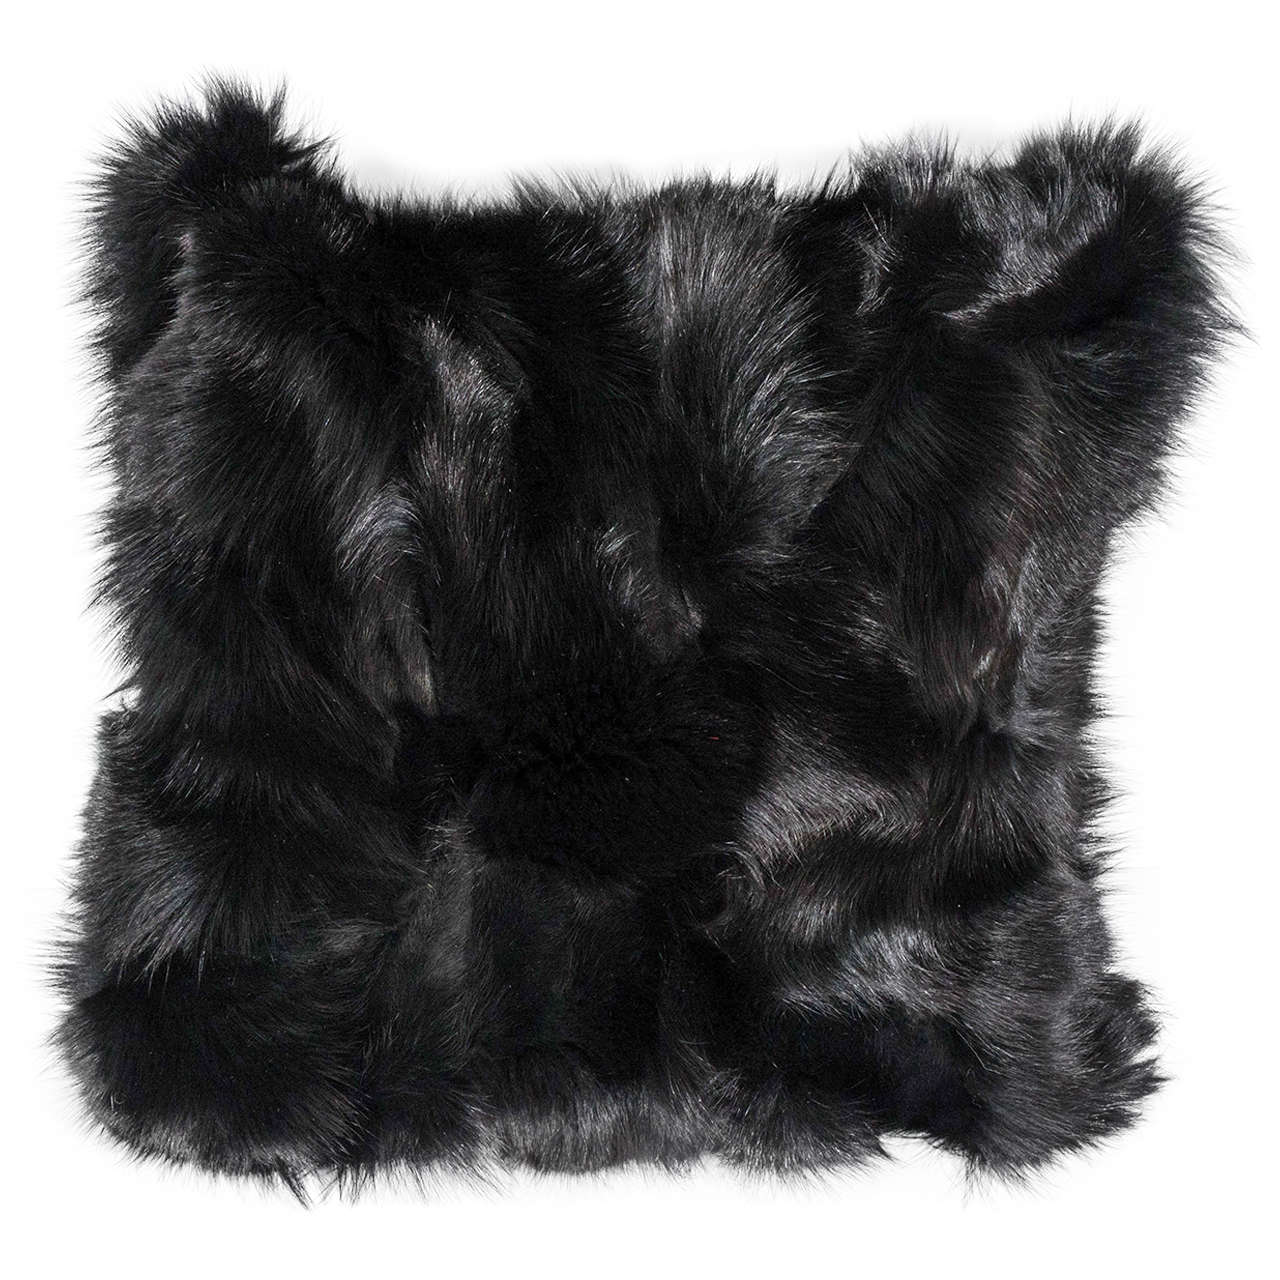 Genuine Double-Sided Black Fox Pillows